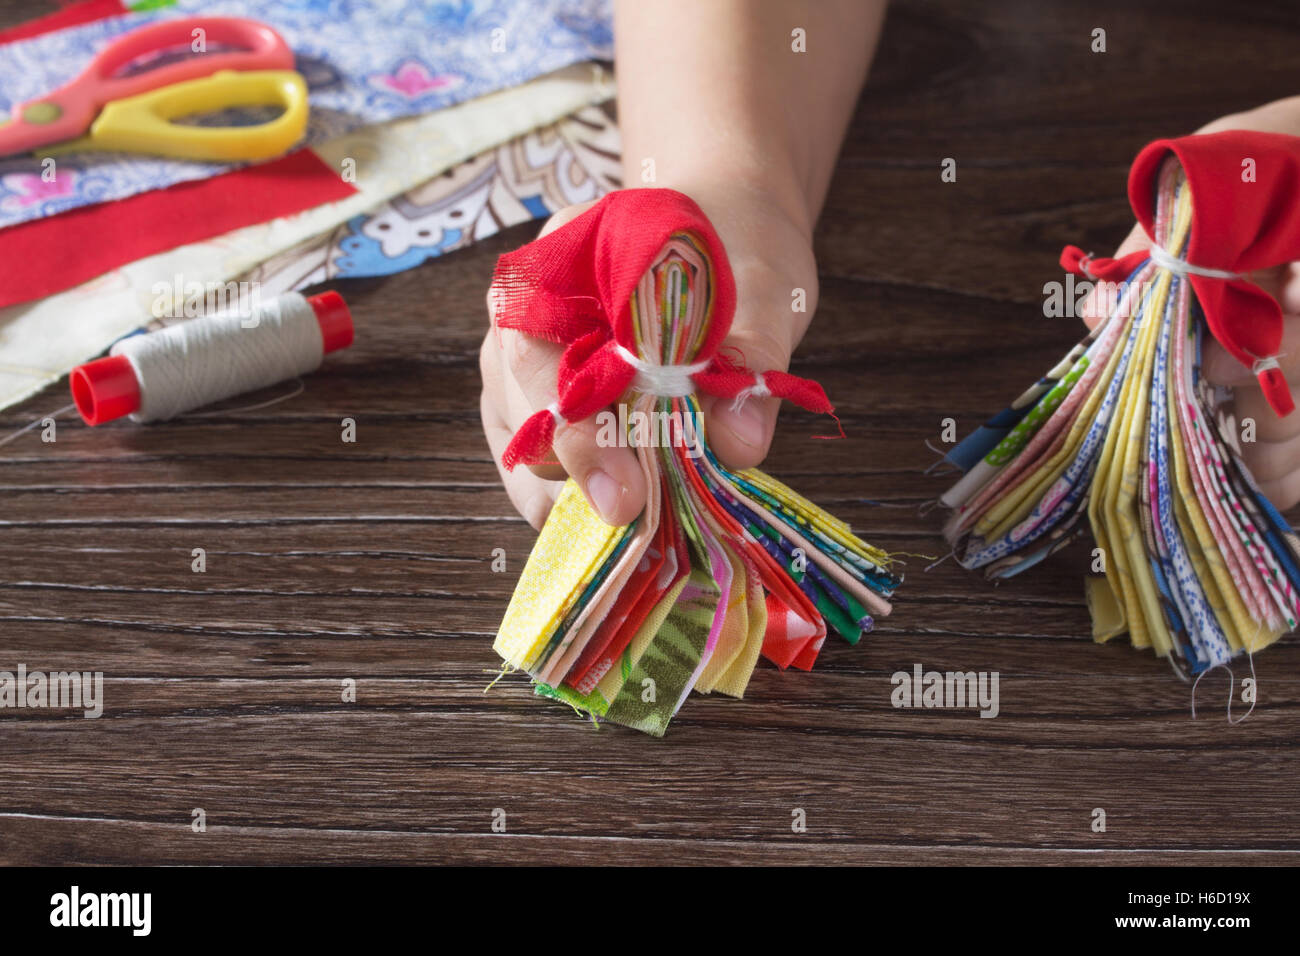 Slavic talisman doll. Russian traditional rag doll handmade. Top view, copy space. Sewing crafts. - Stock Image